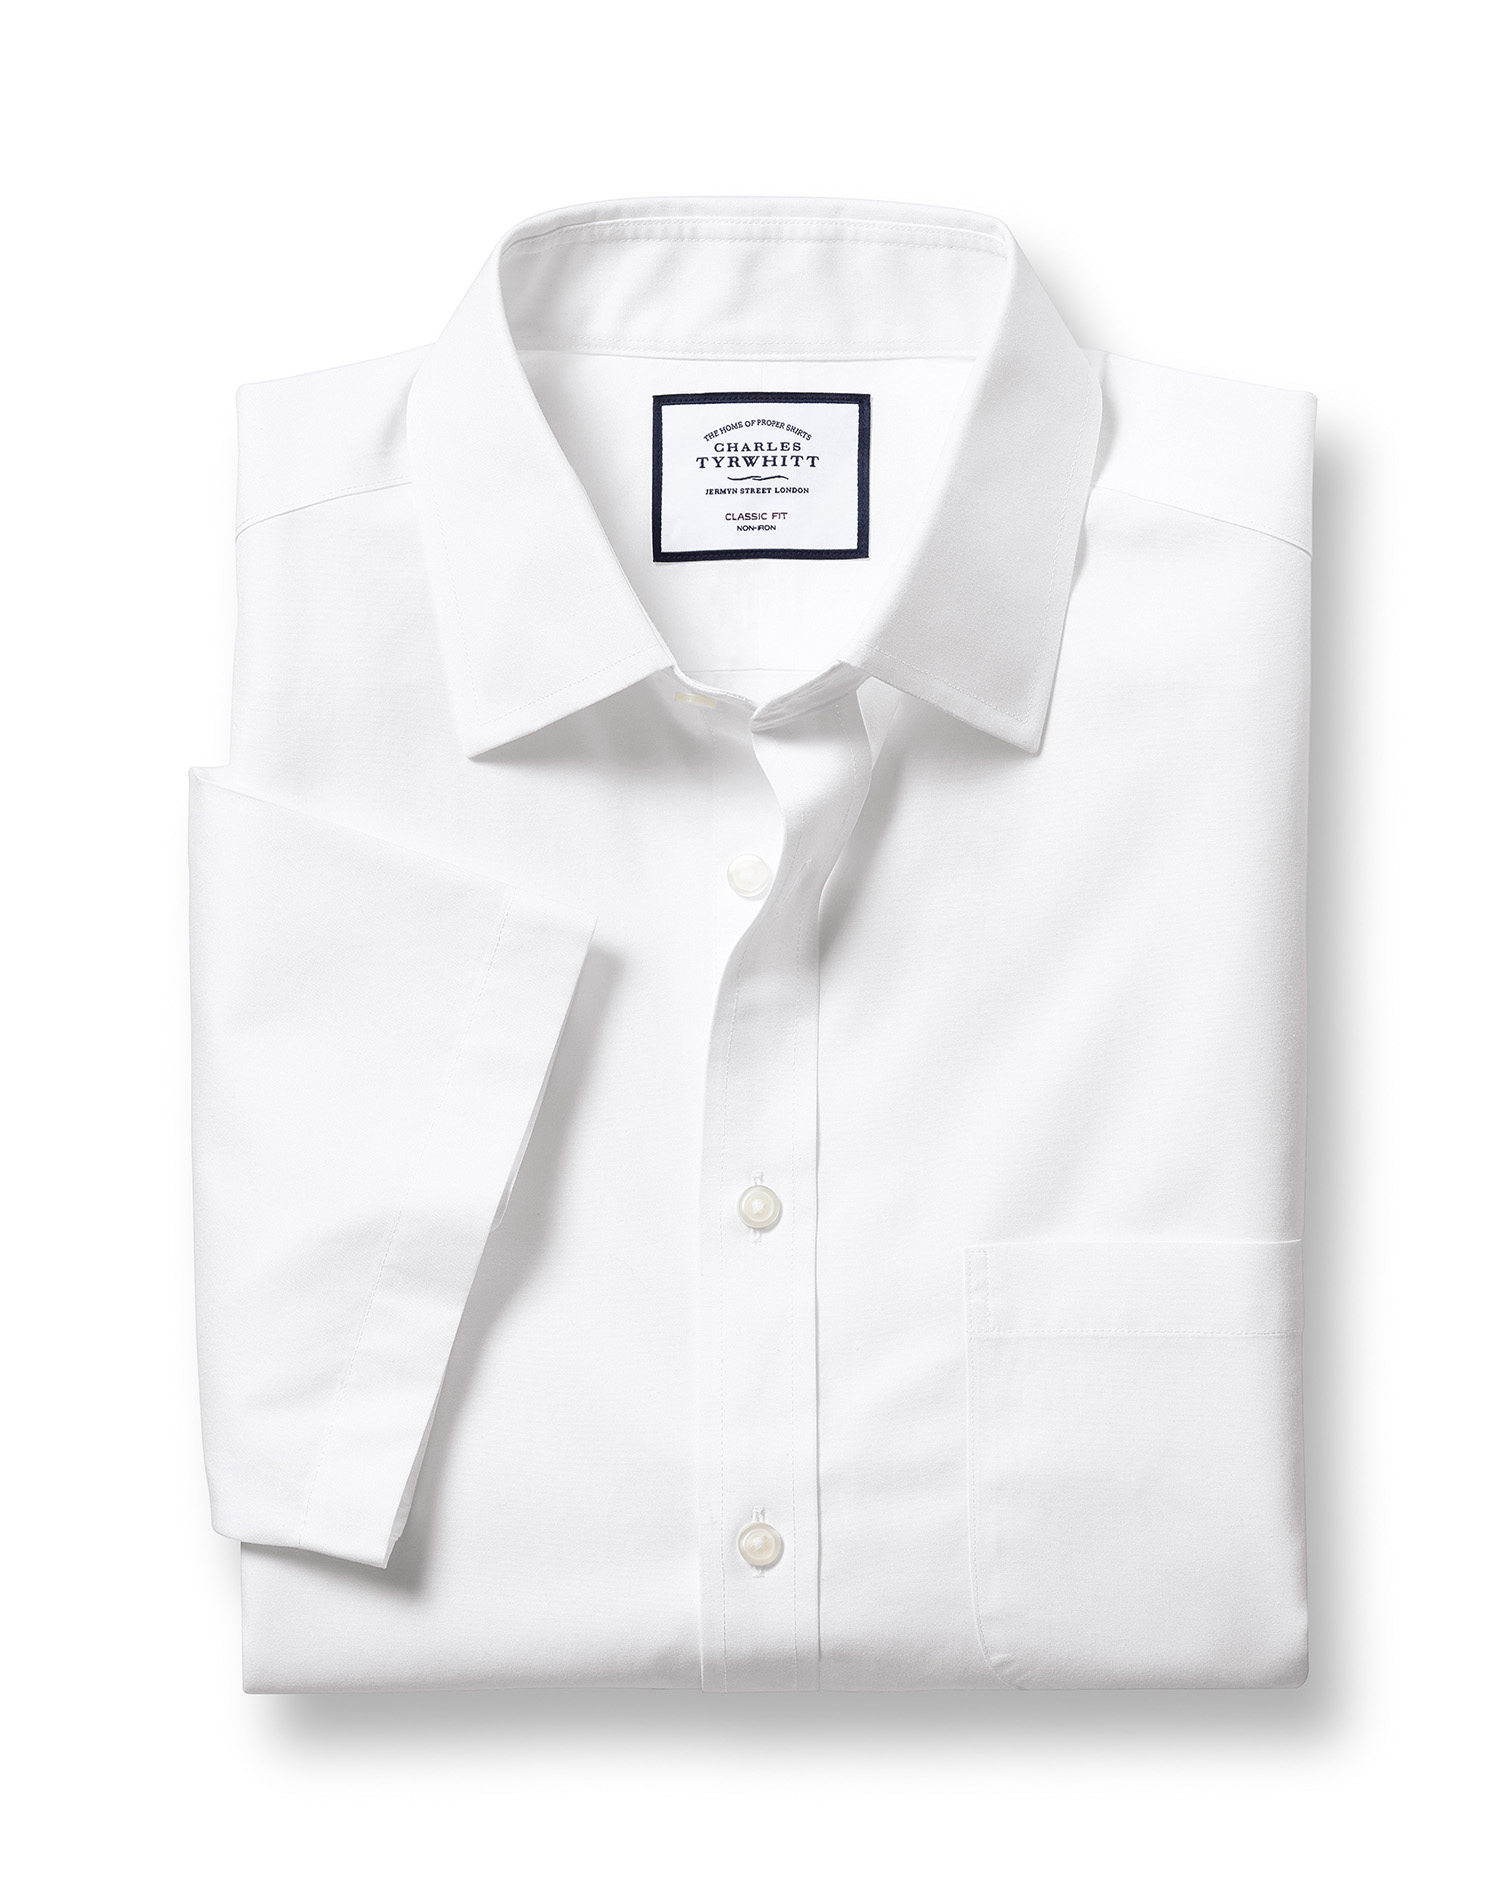 Slim Fit Non-Iron White Tyrwhitt Cool Short Sleeve Cotton Formal Shirt Size 15.5/Short by Charles Ty